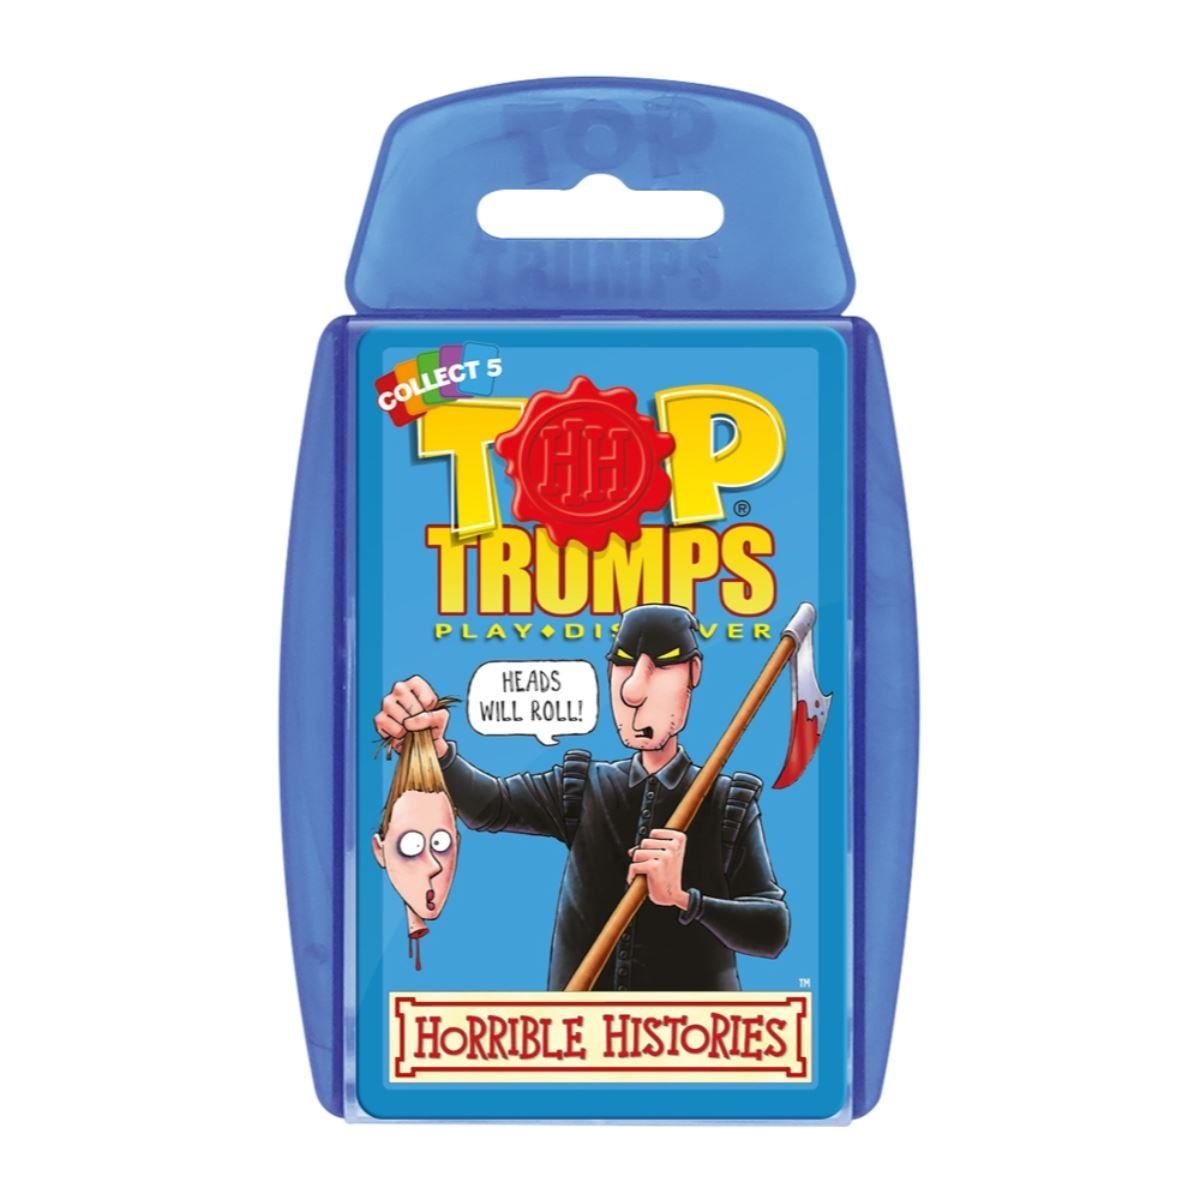 Horrible Histories Top Trumps Card Game